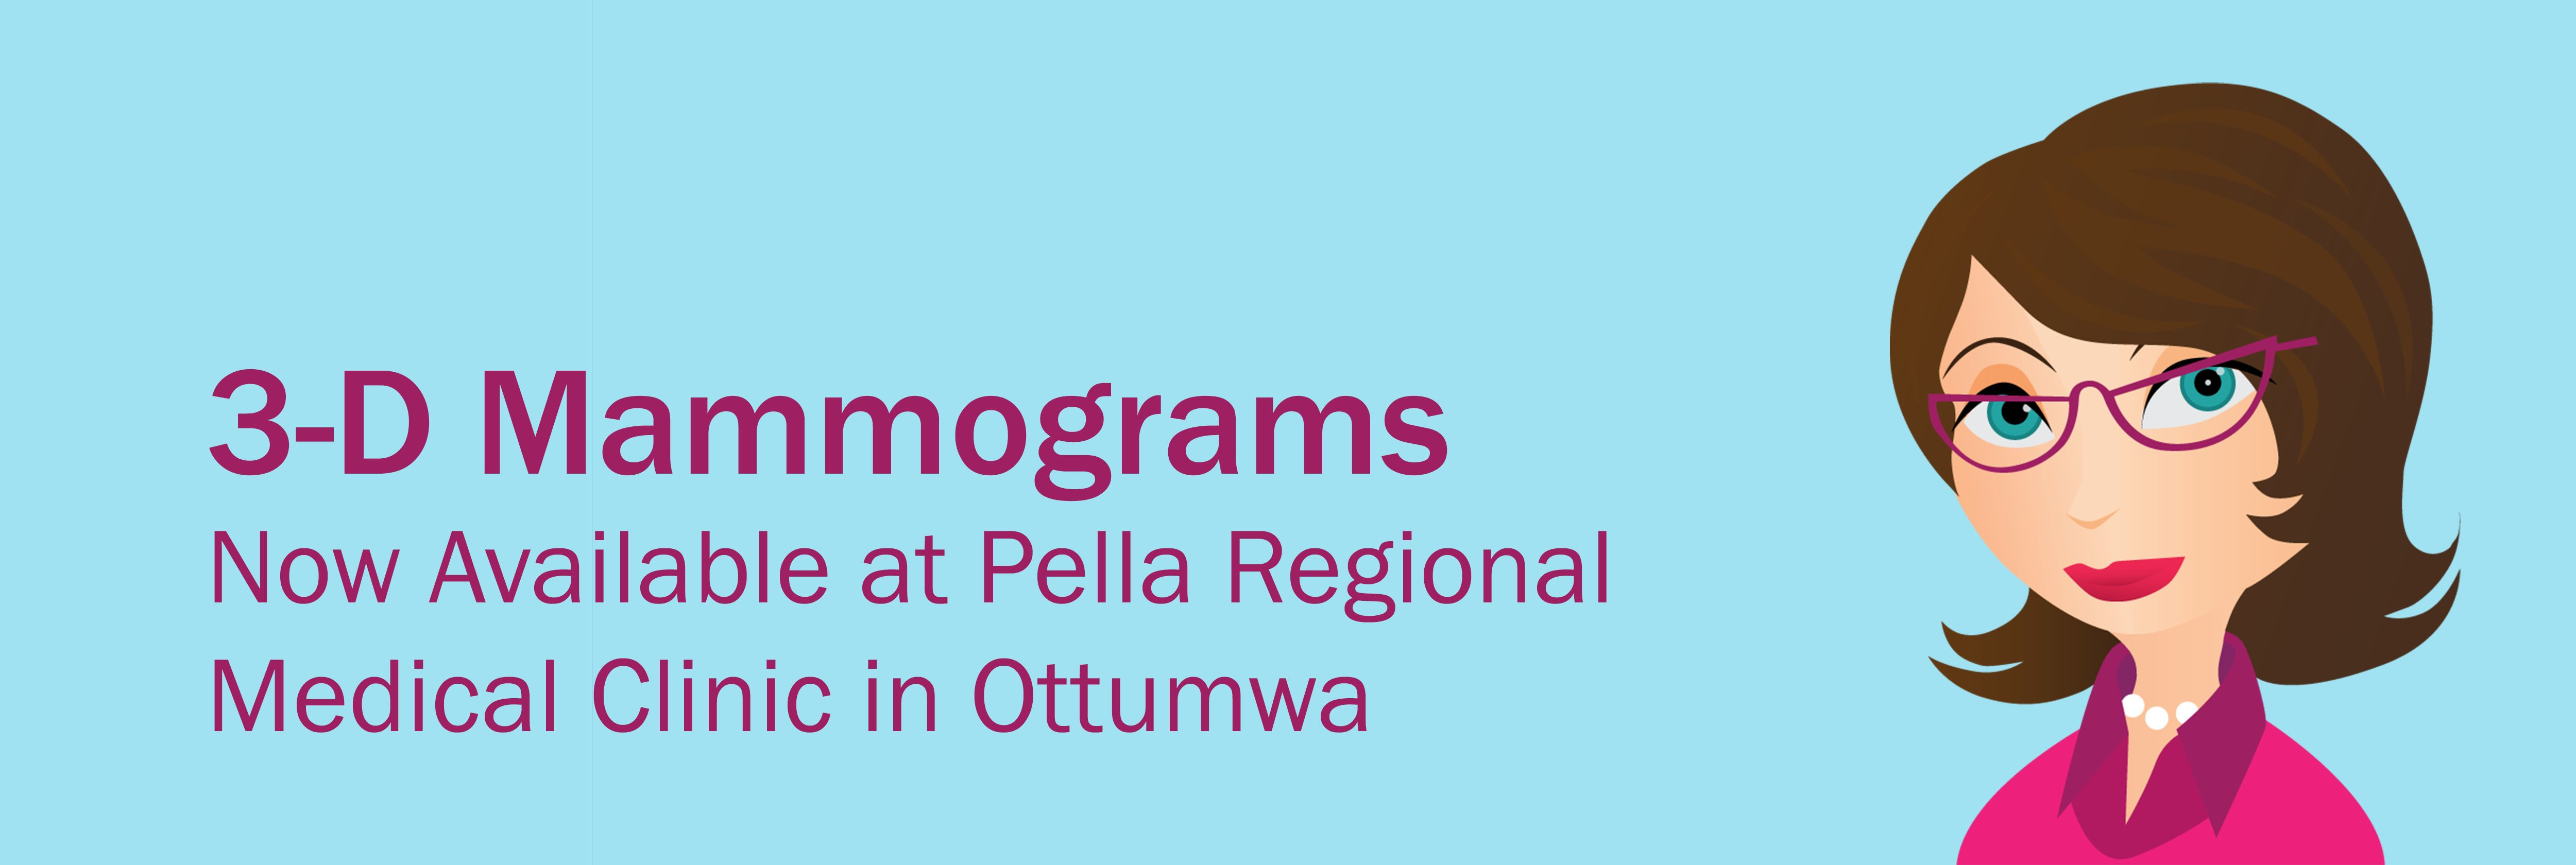 3-D mammograms now available at Pella Regional